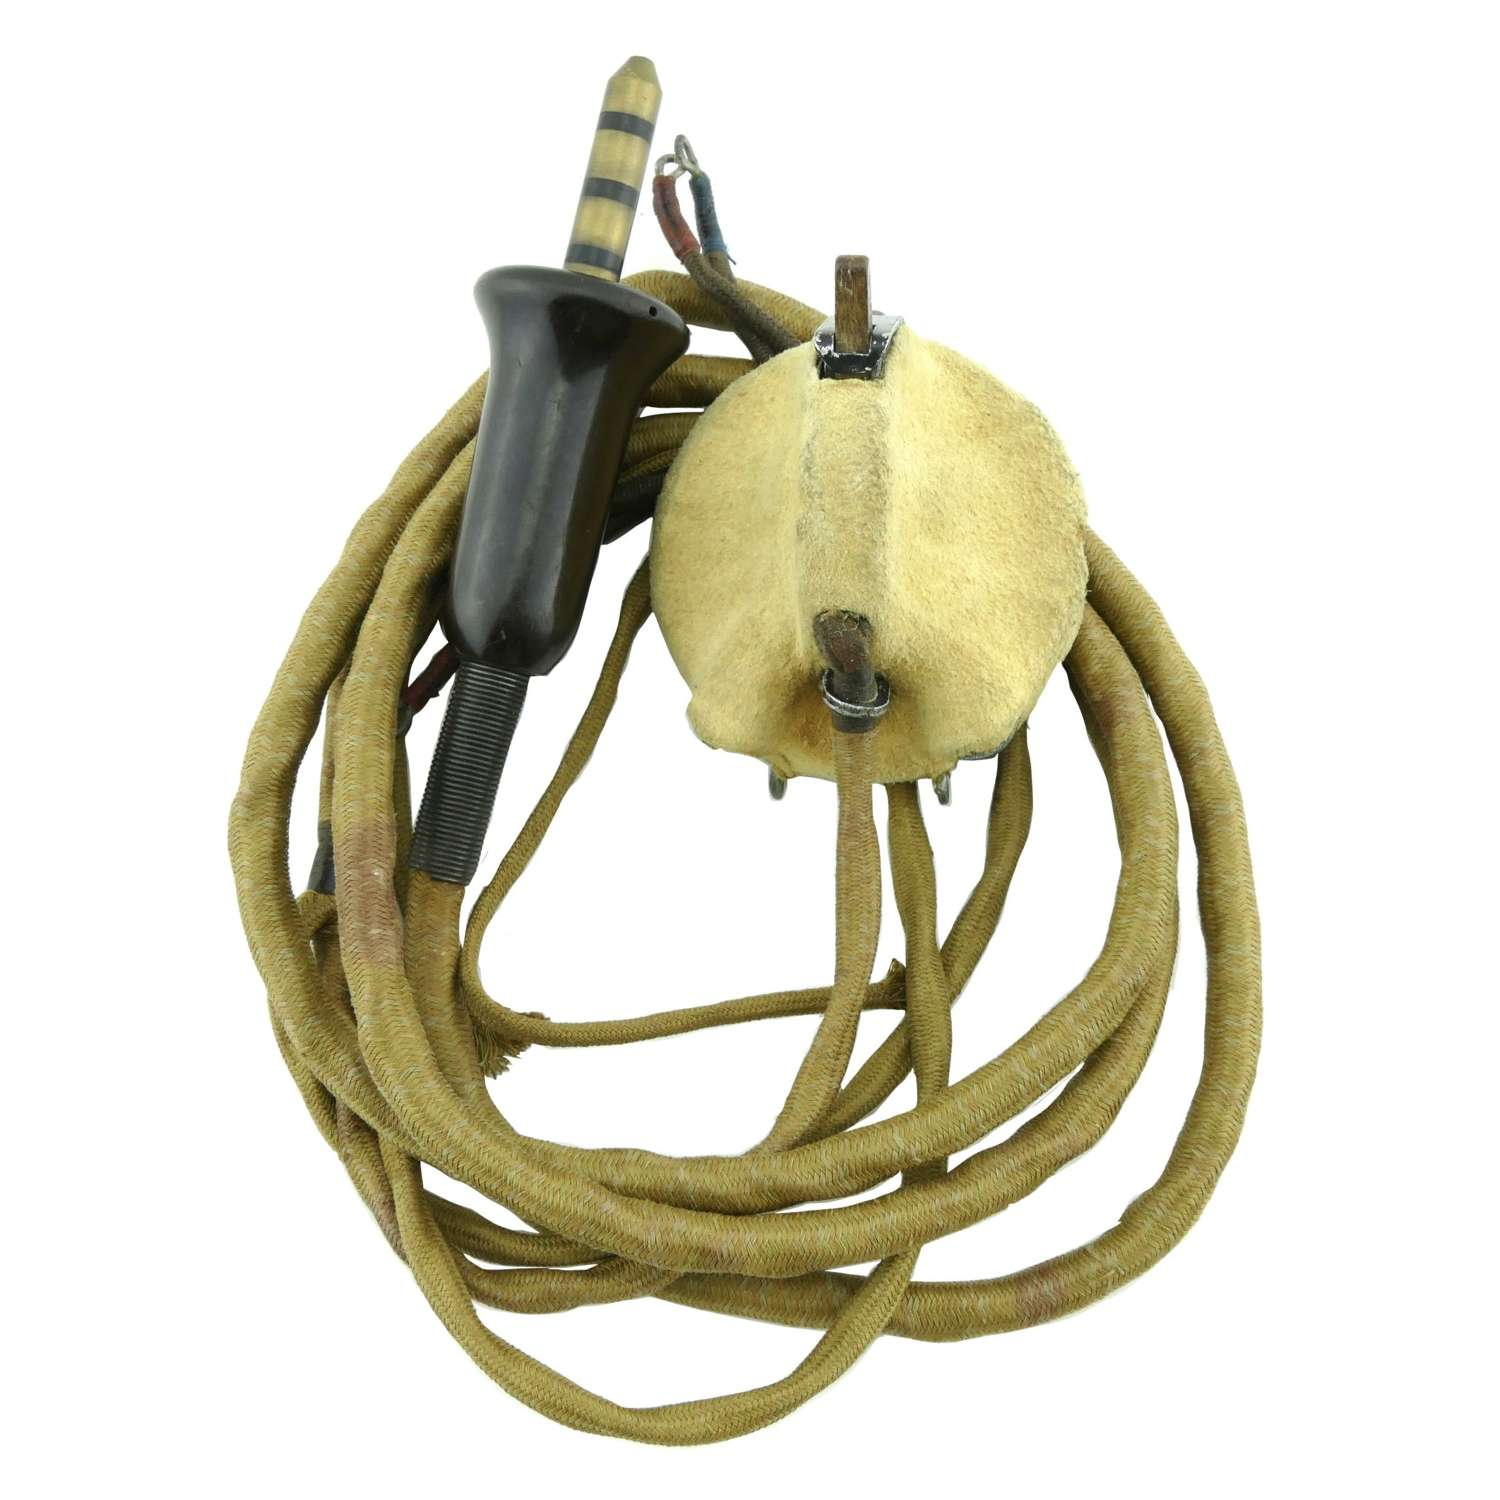 RAF flying helmet external wiring loom with type C microphone